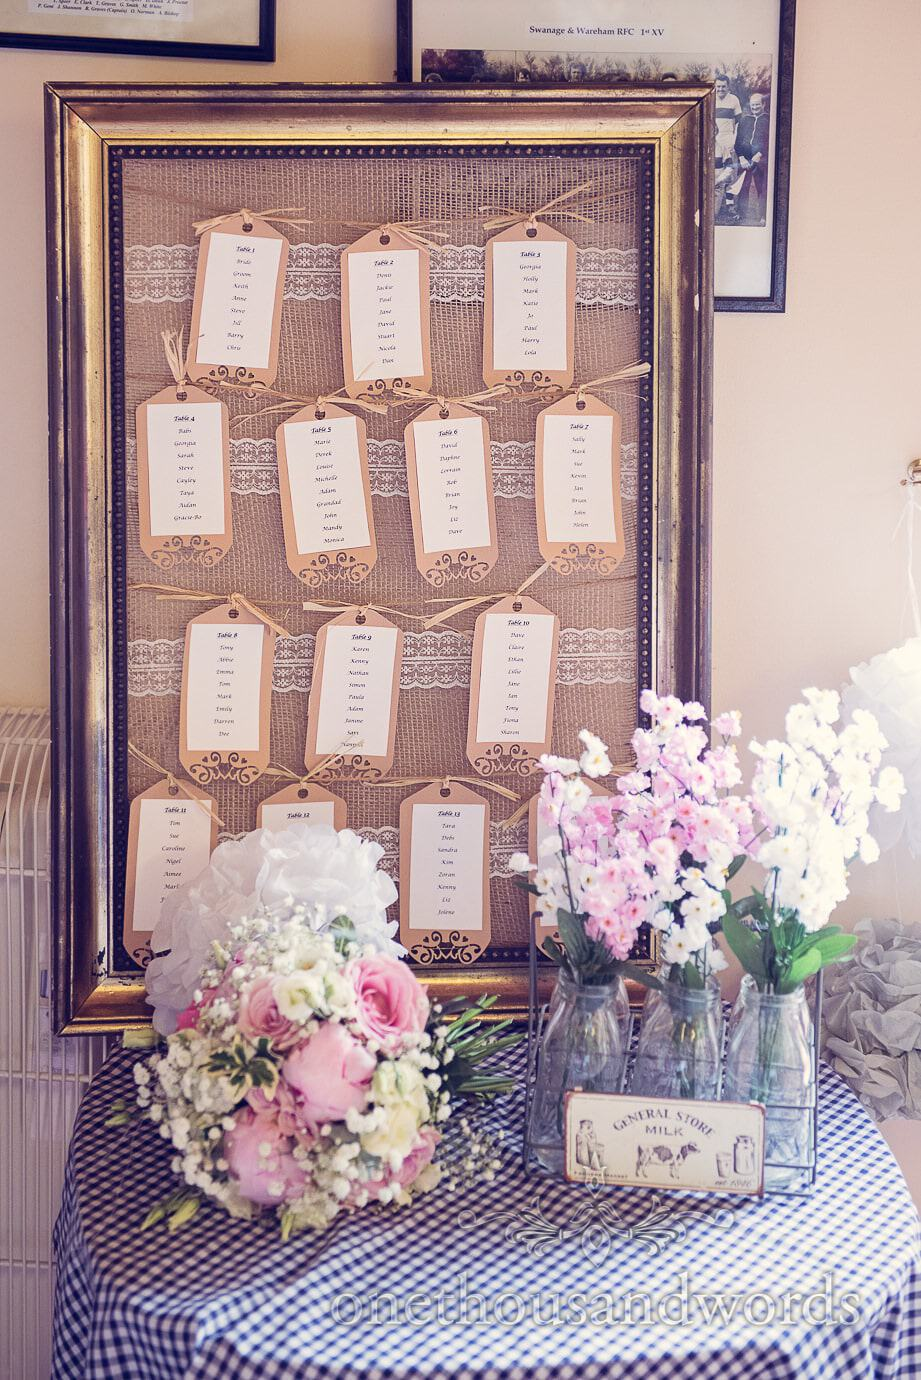 Framed wedding table plan with rustic labels and lace detailing